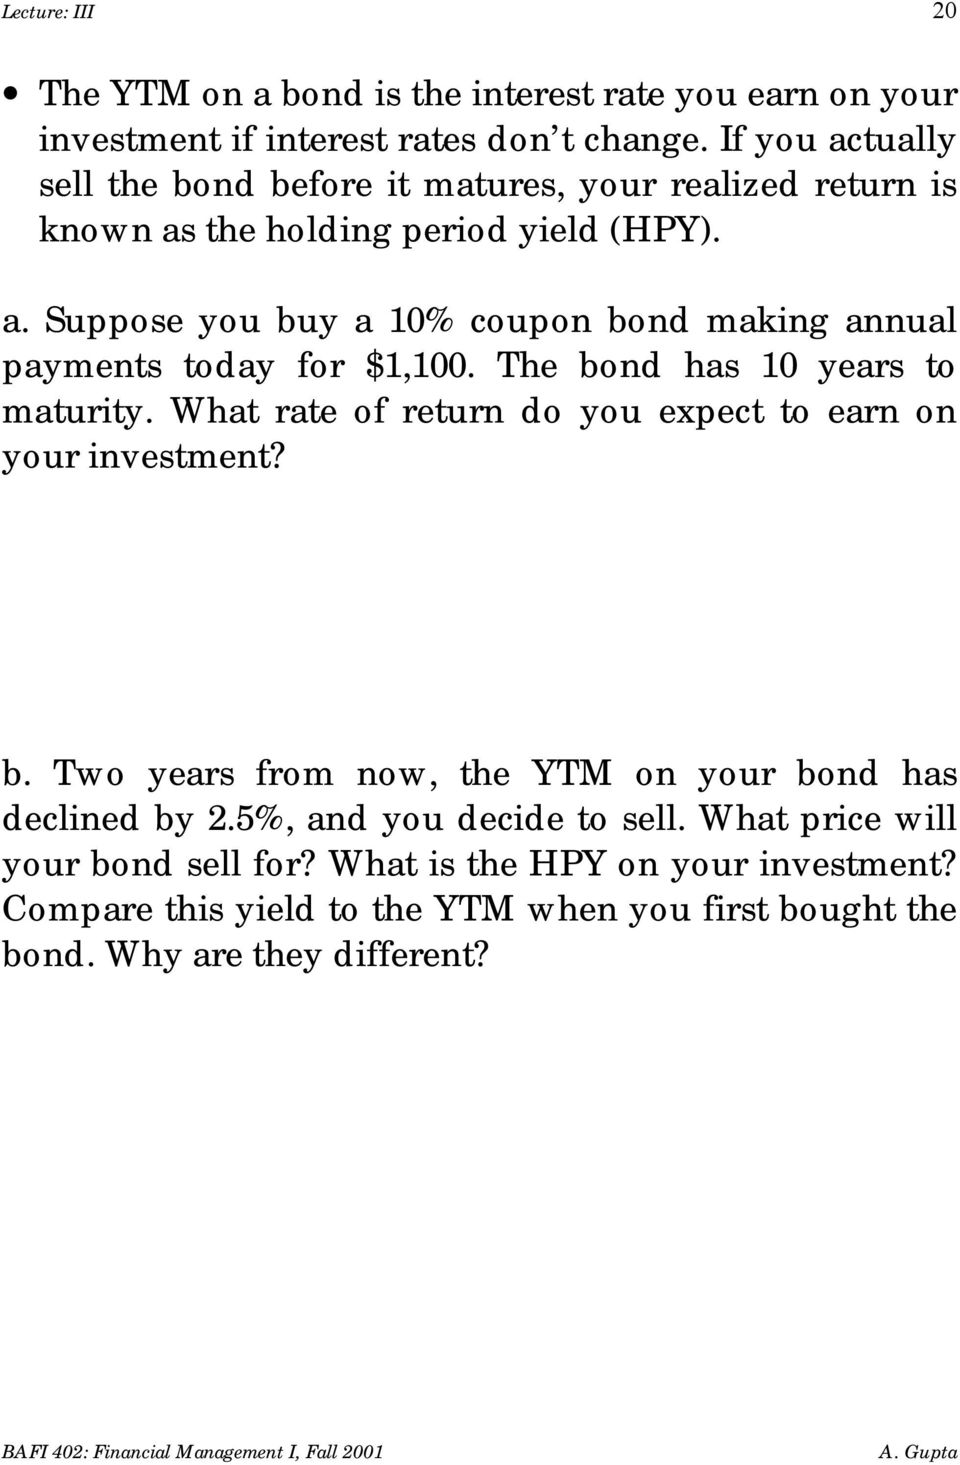 The bond has 10 years to maturity. What rate of return do you expect to earn on your investment? b. Two years from now, the YTM on your bond has declined by 2.